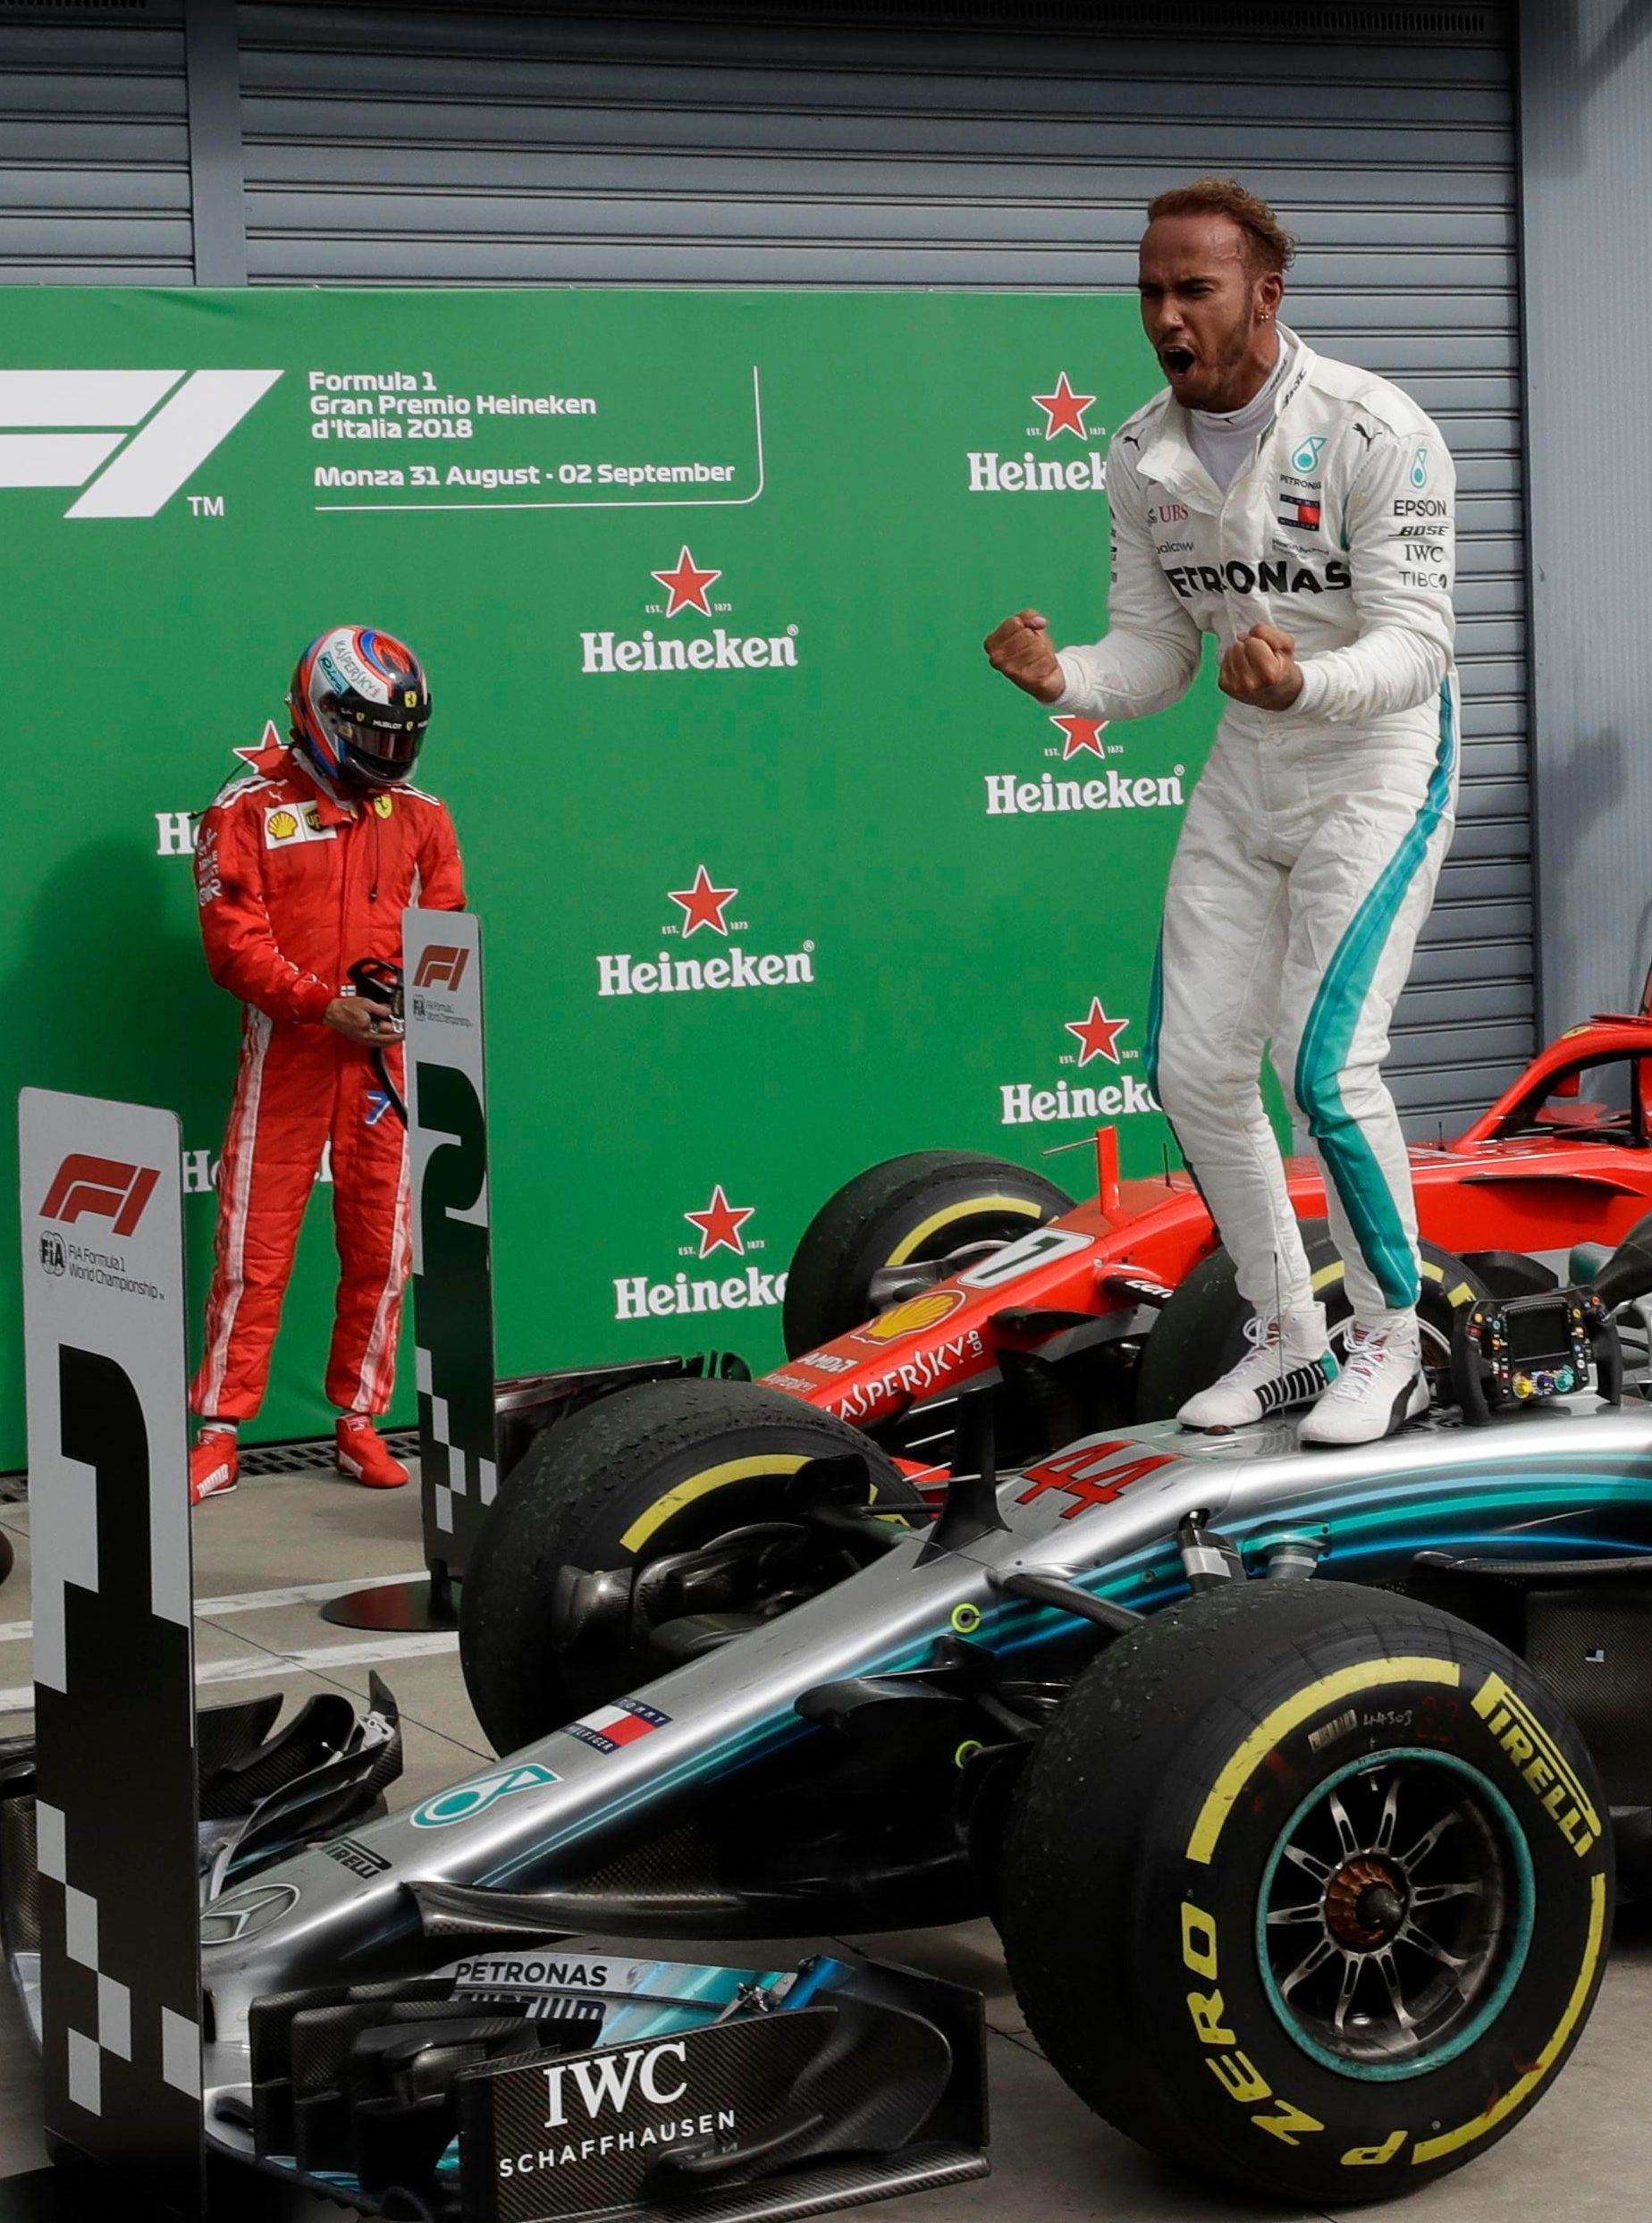 Brit Lewis Hamilton seems set to land his fourth F1 world title in the past five years